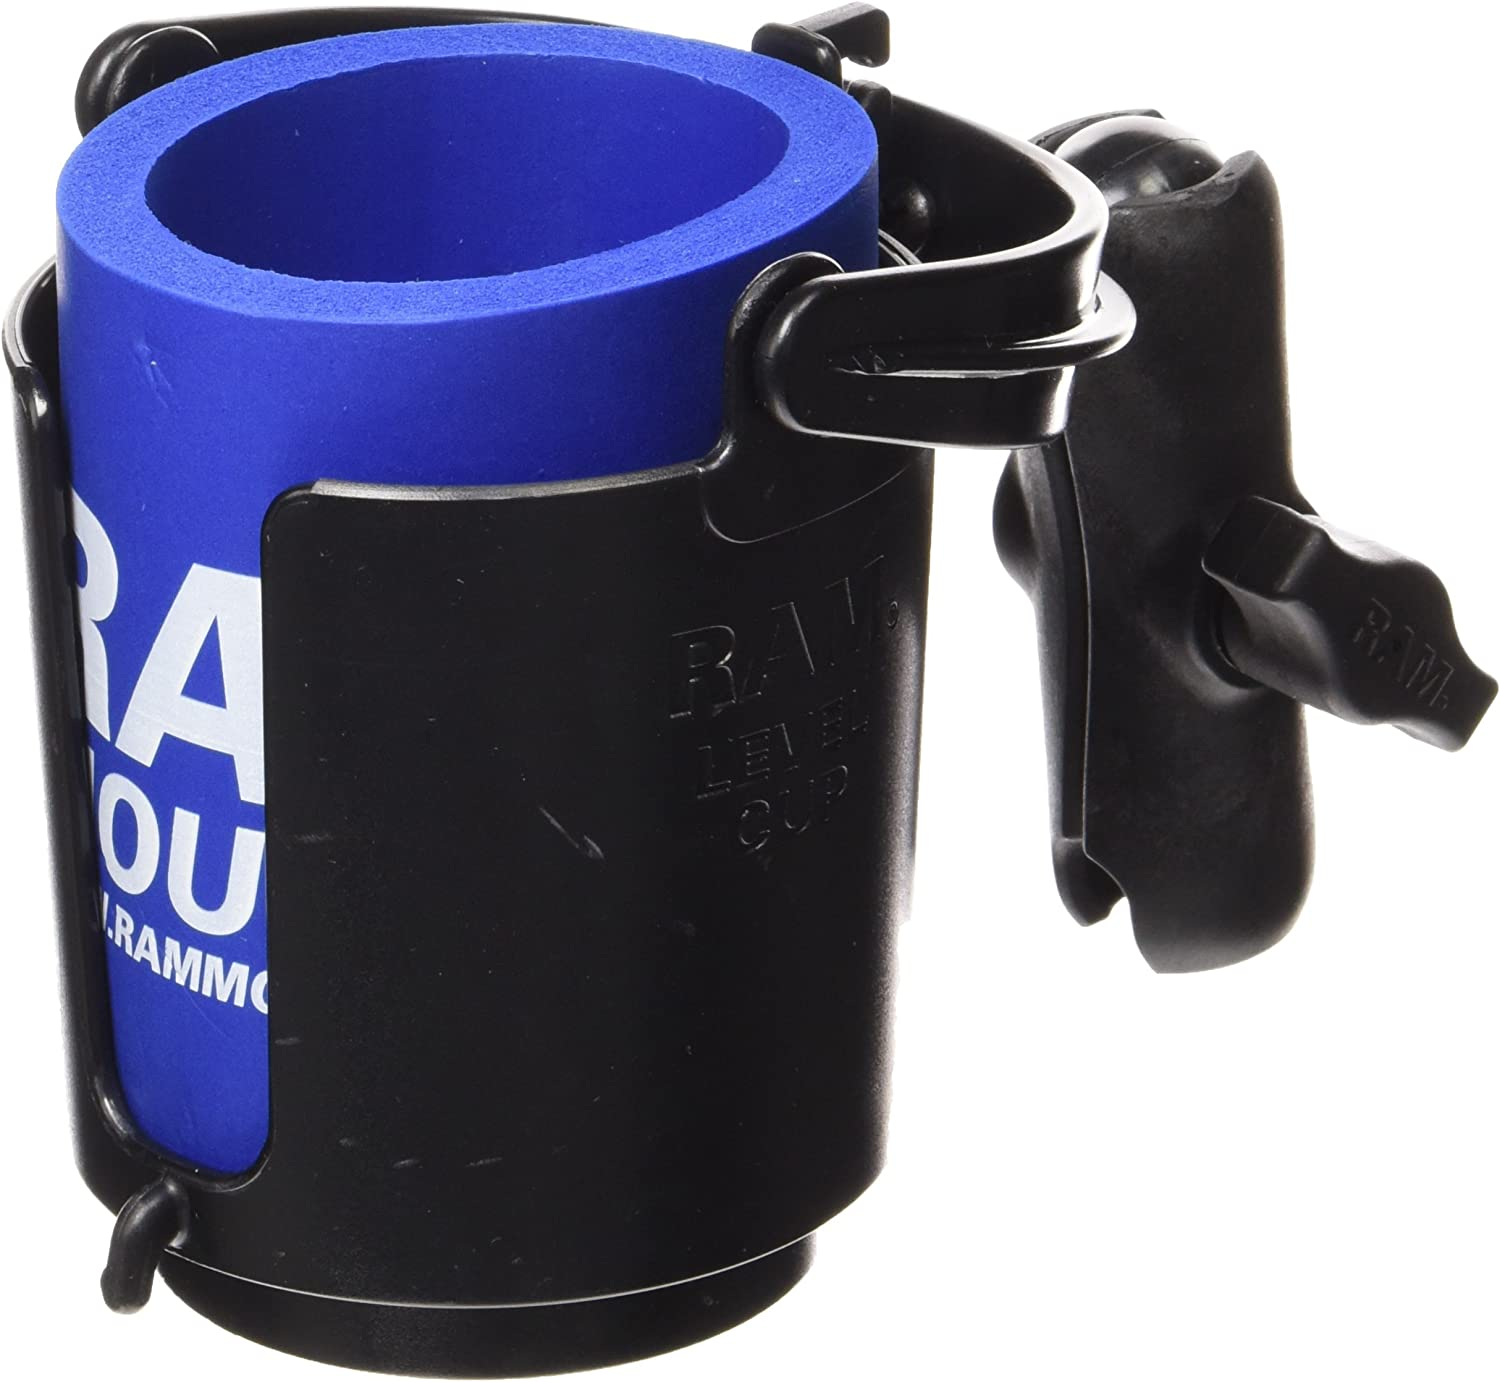 RAM Level Cup 16oz Drink Holder with Double Socket Arm